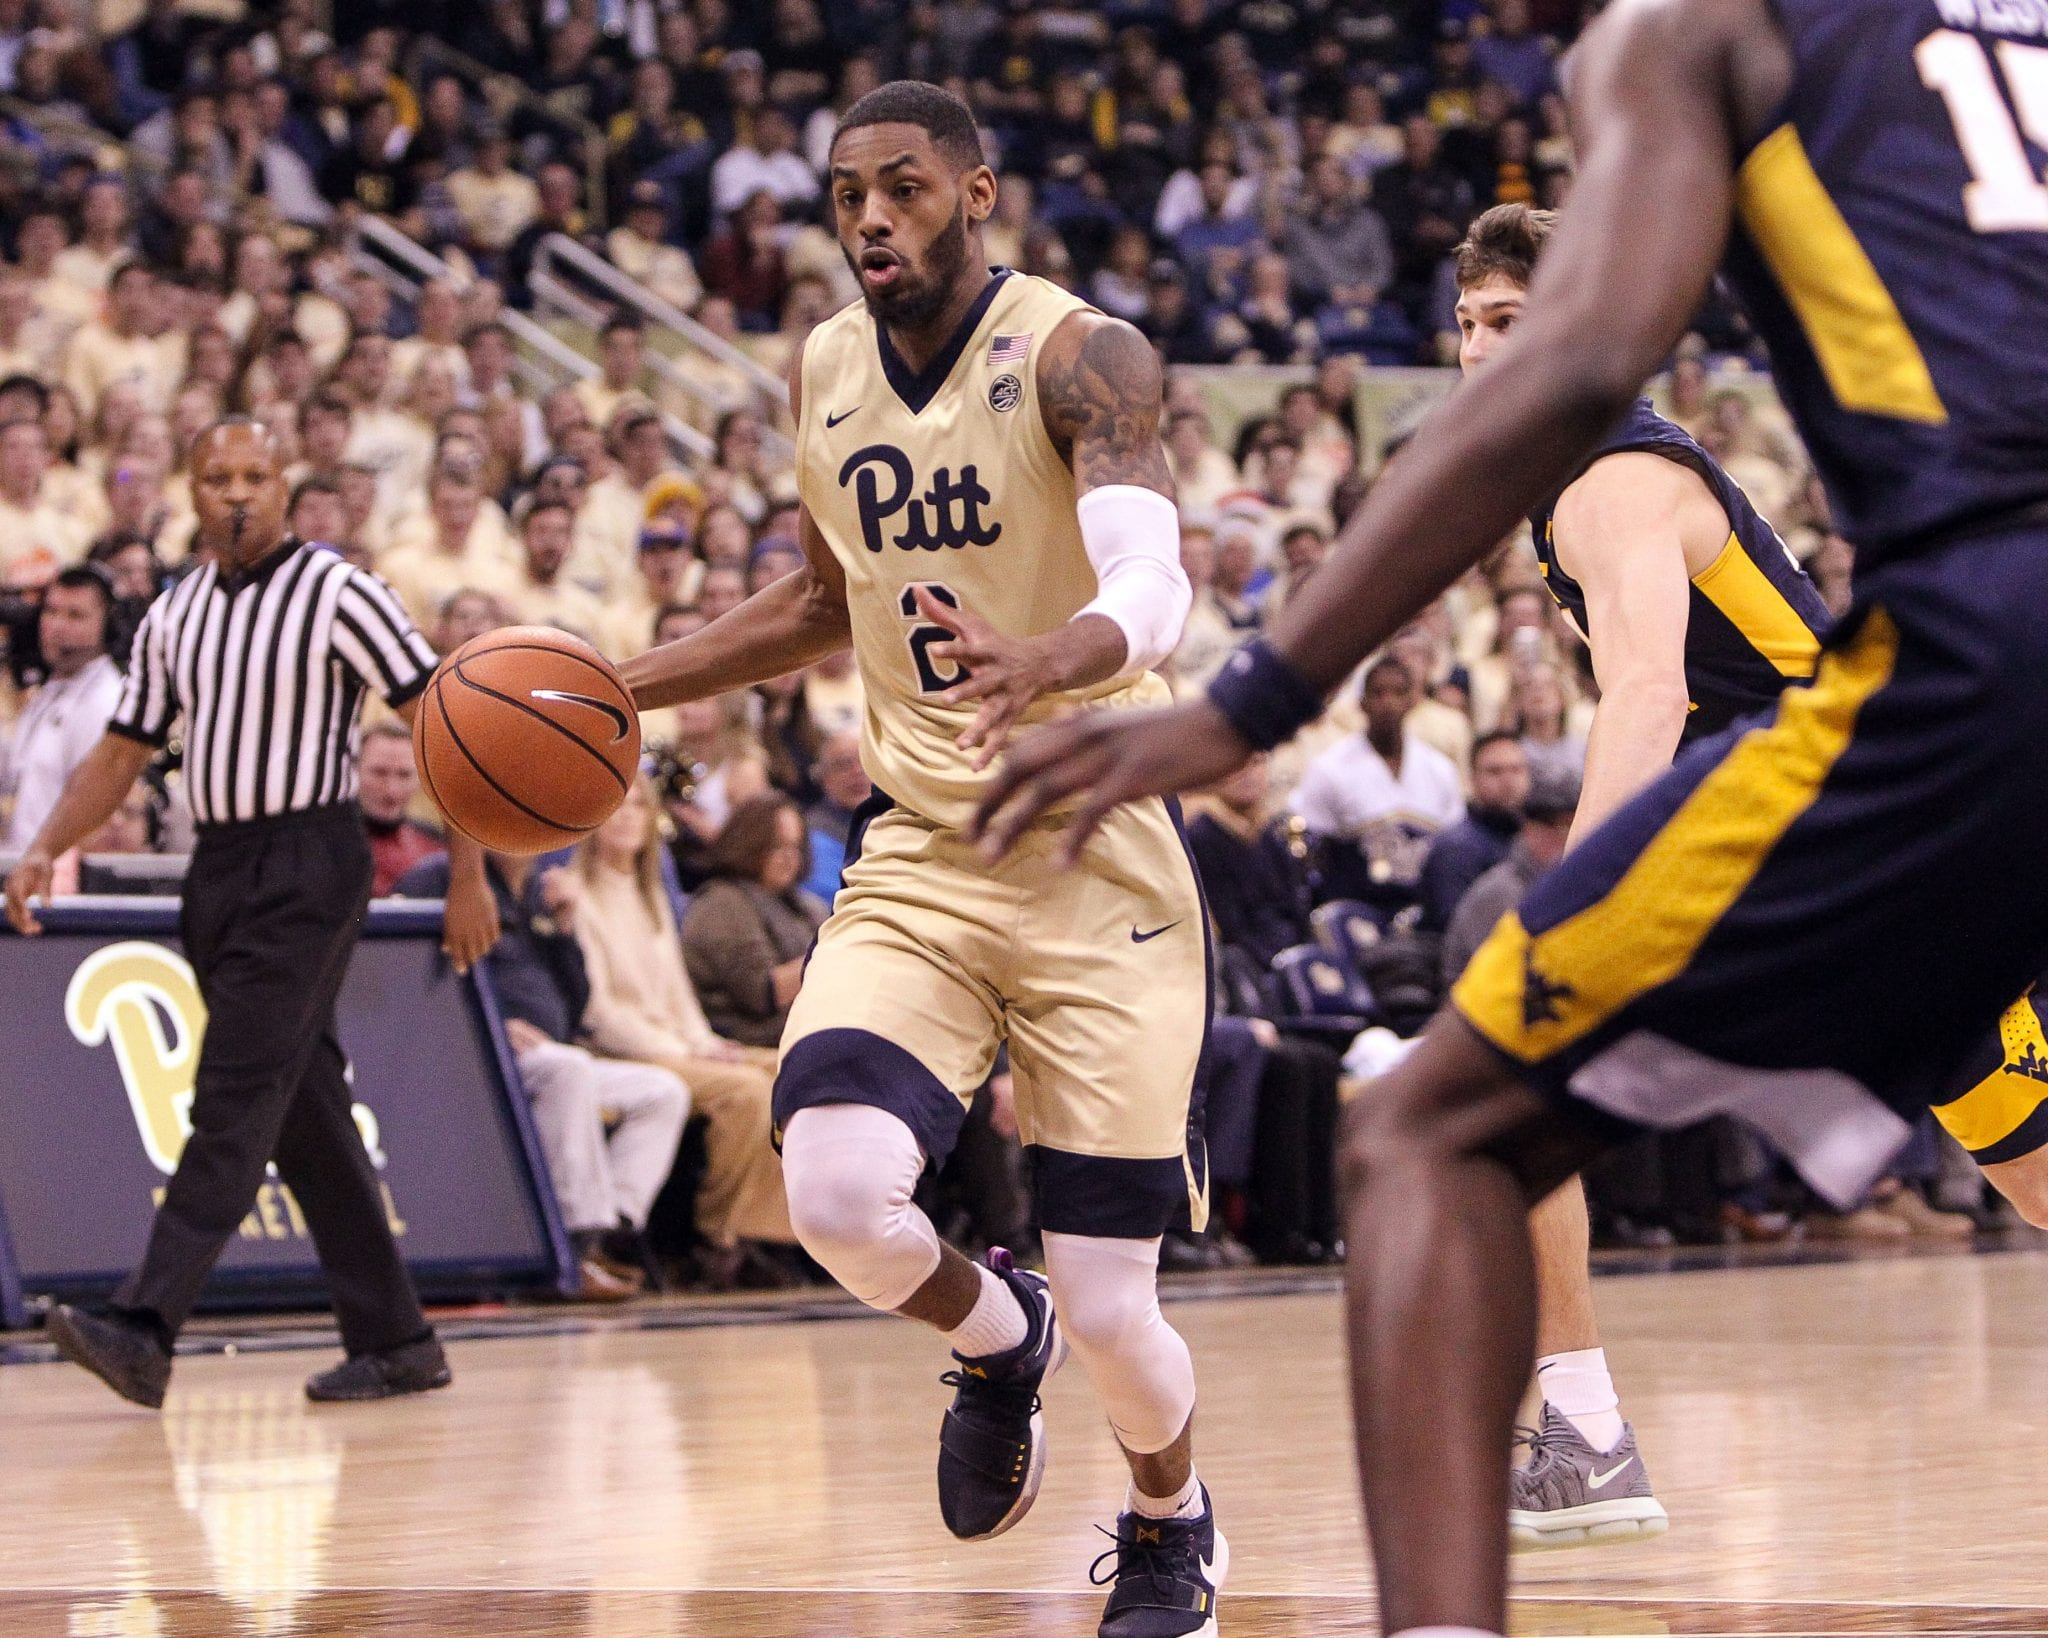 Jonathan Milligan (2) drives to the basket as the Pitt Panthers take on West Virginia on December 9, 2017 -- DAVID HAGUE